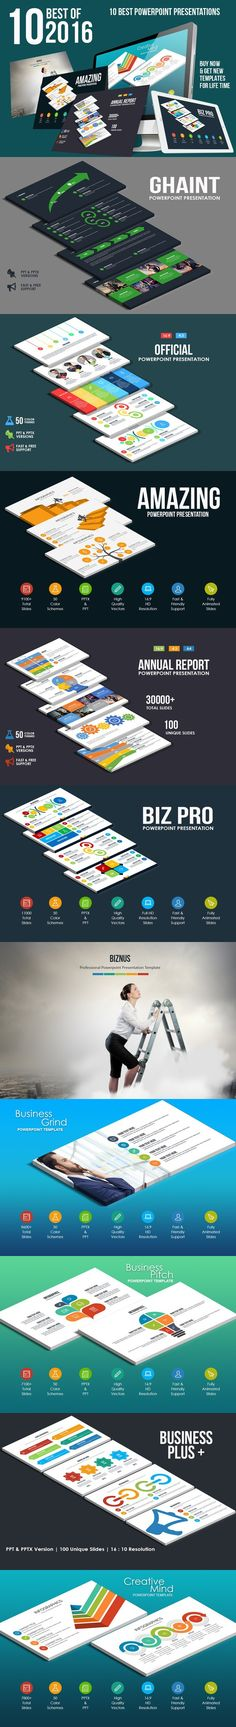 Best Of 2016 Bundle. Business Infographic